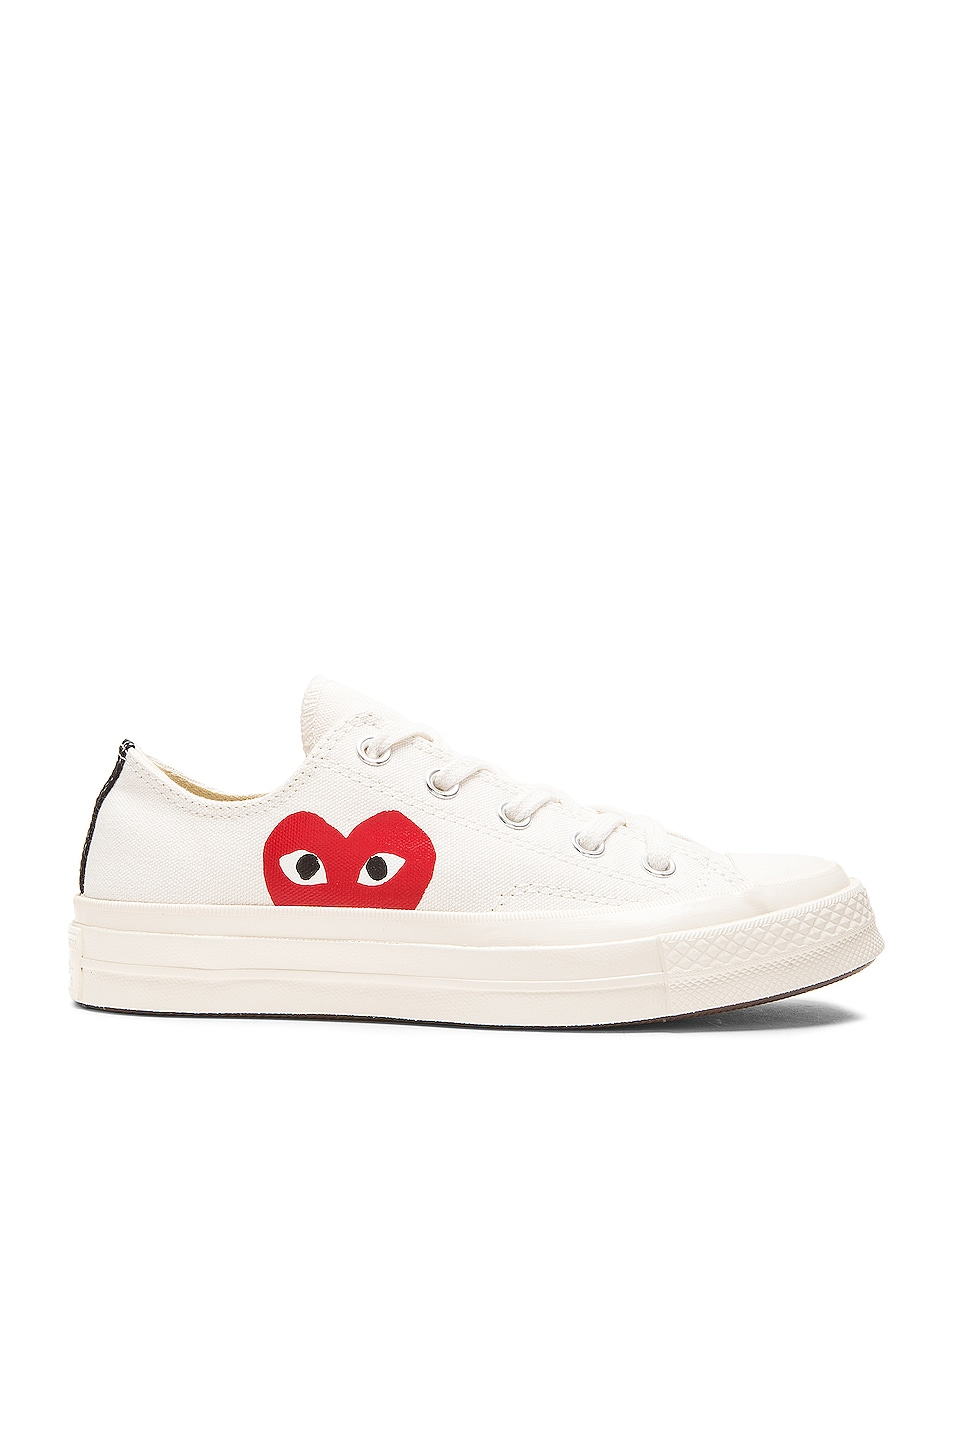 comme des garcons converse low top white